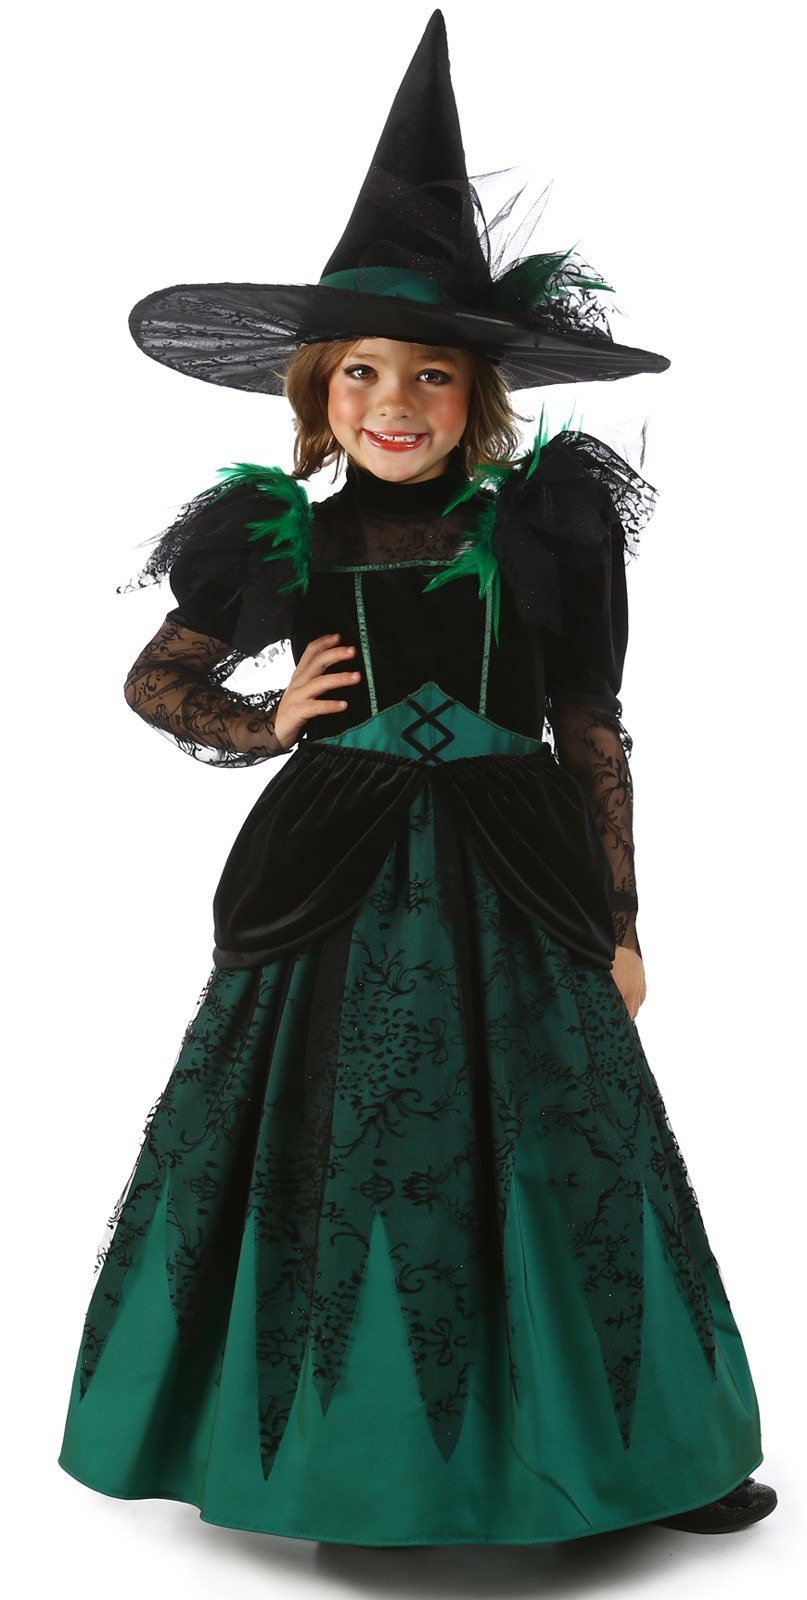 Wizard of Oz Princess Deluxe Wicked Witch of the West Costume Small (6)